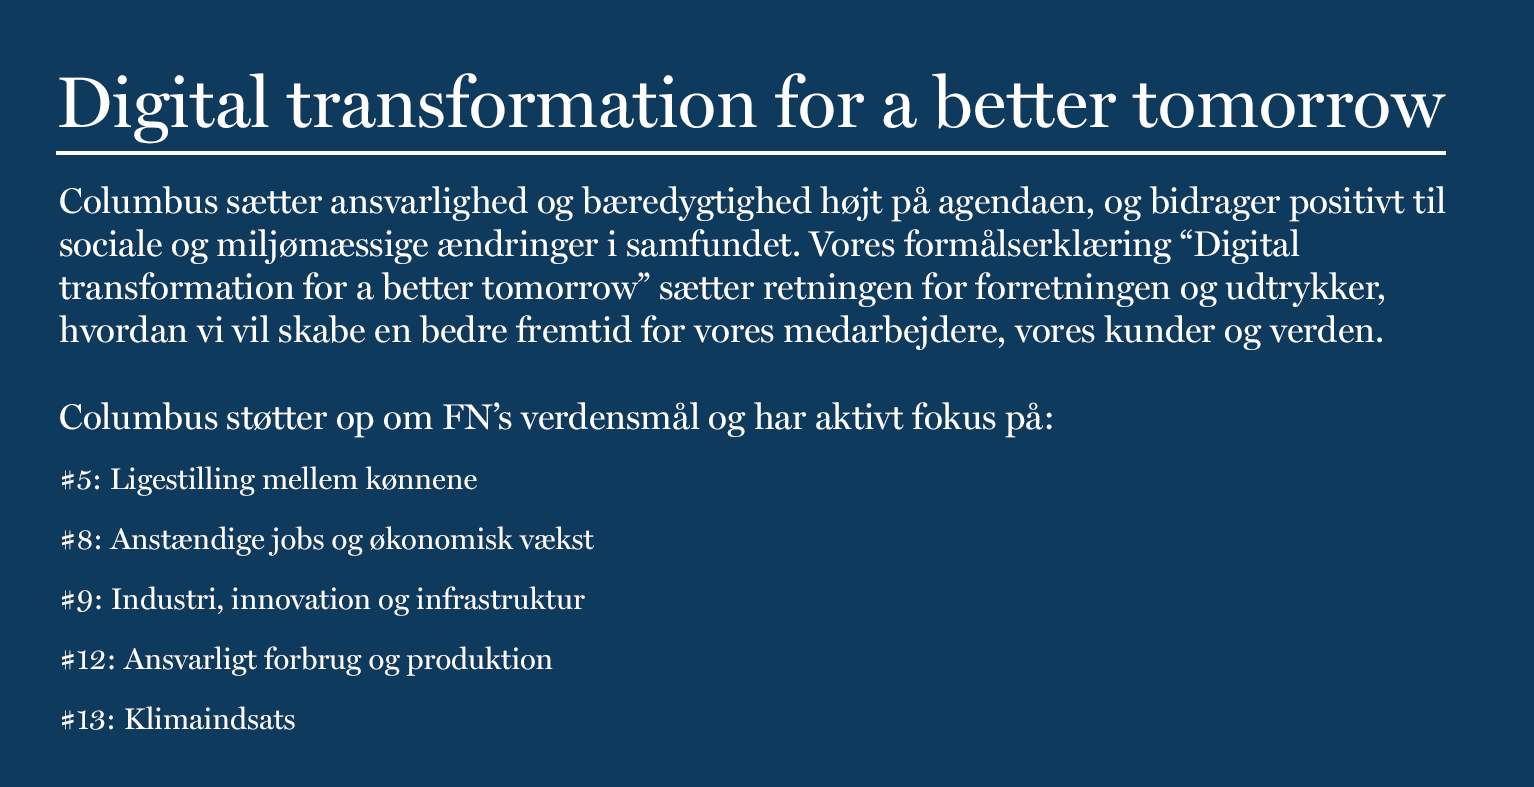 Digital transformation for a better tomorrow